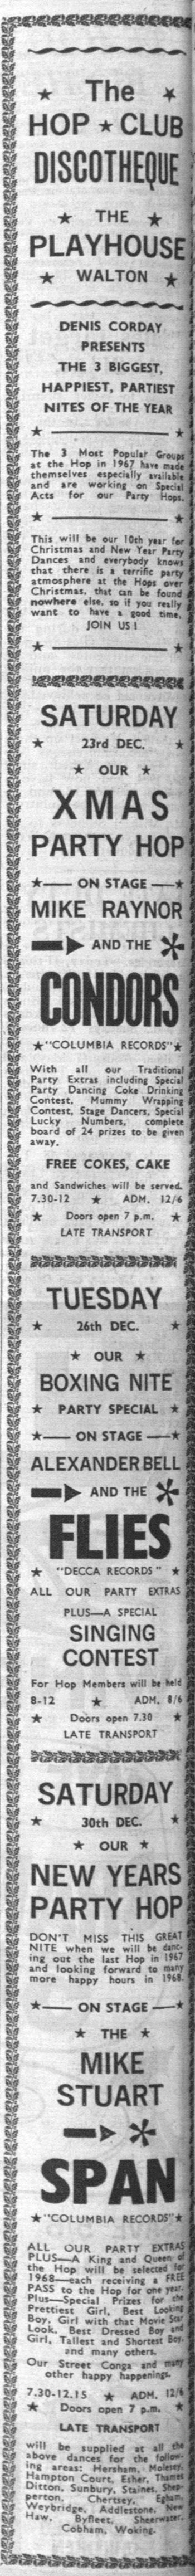 Mike Stuart Span, The Flies, The Condors, Eddie Floyd, Woking Herald & News Dec 8., 1967